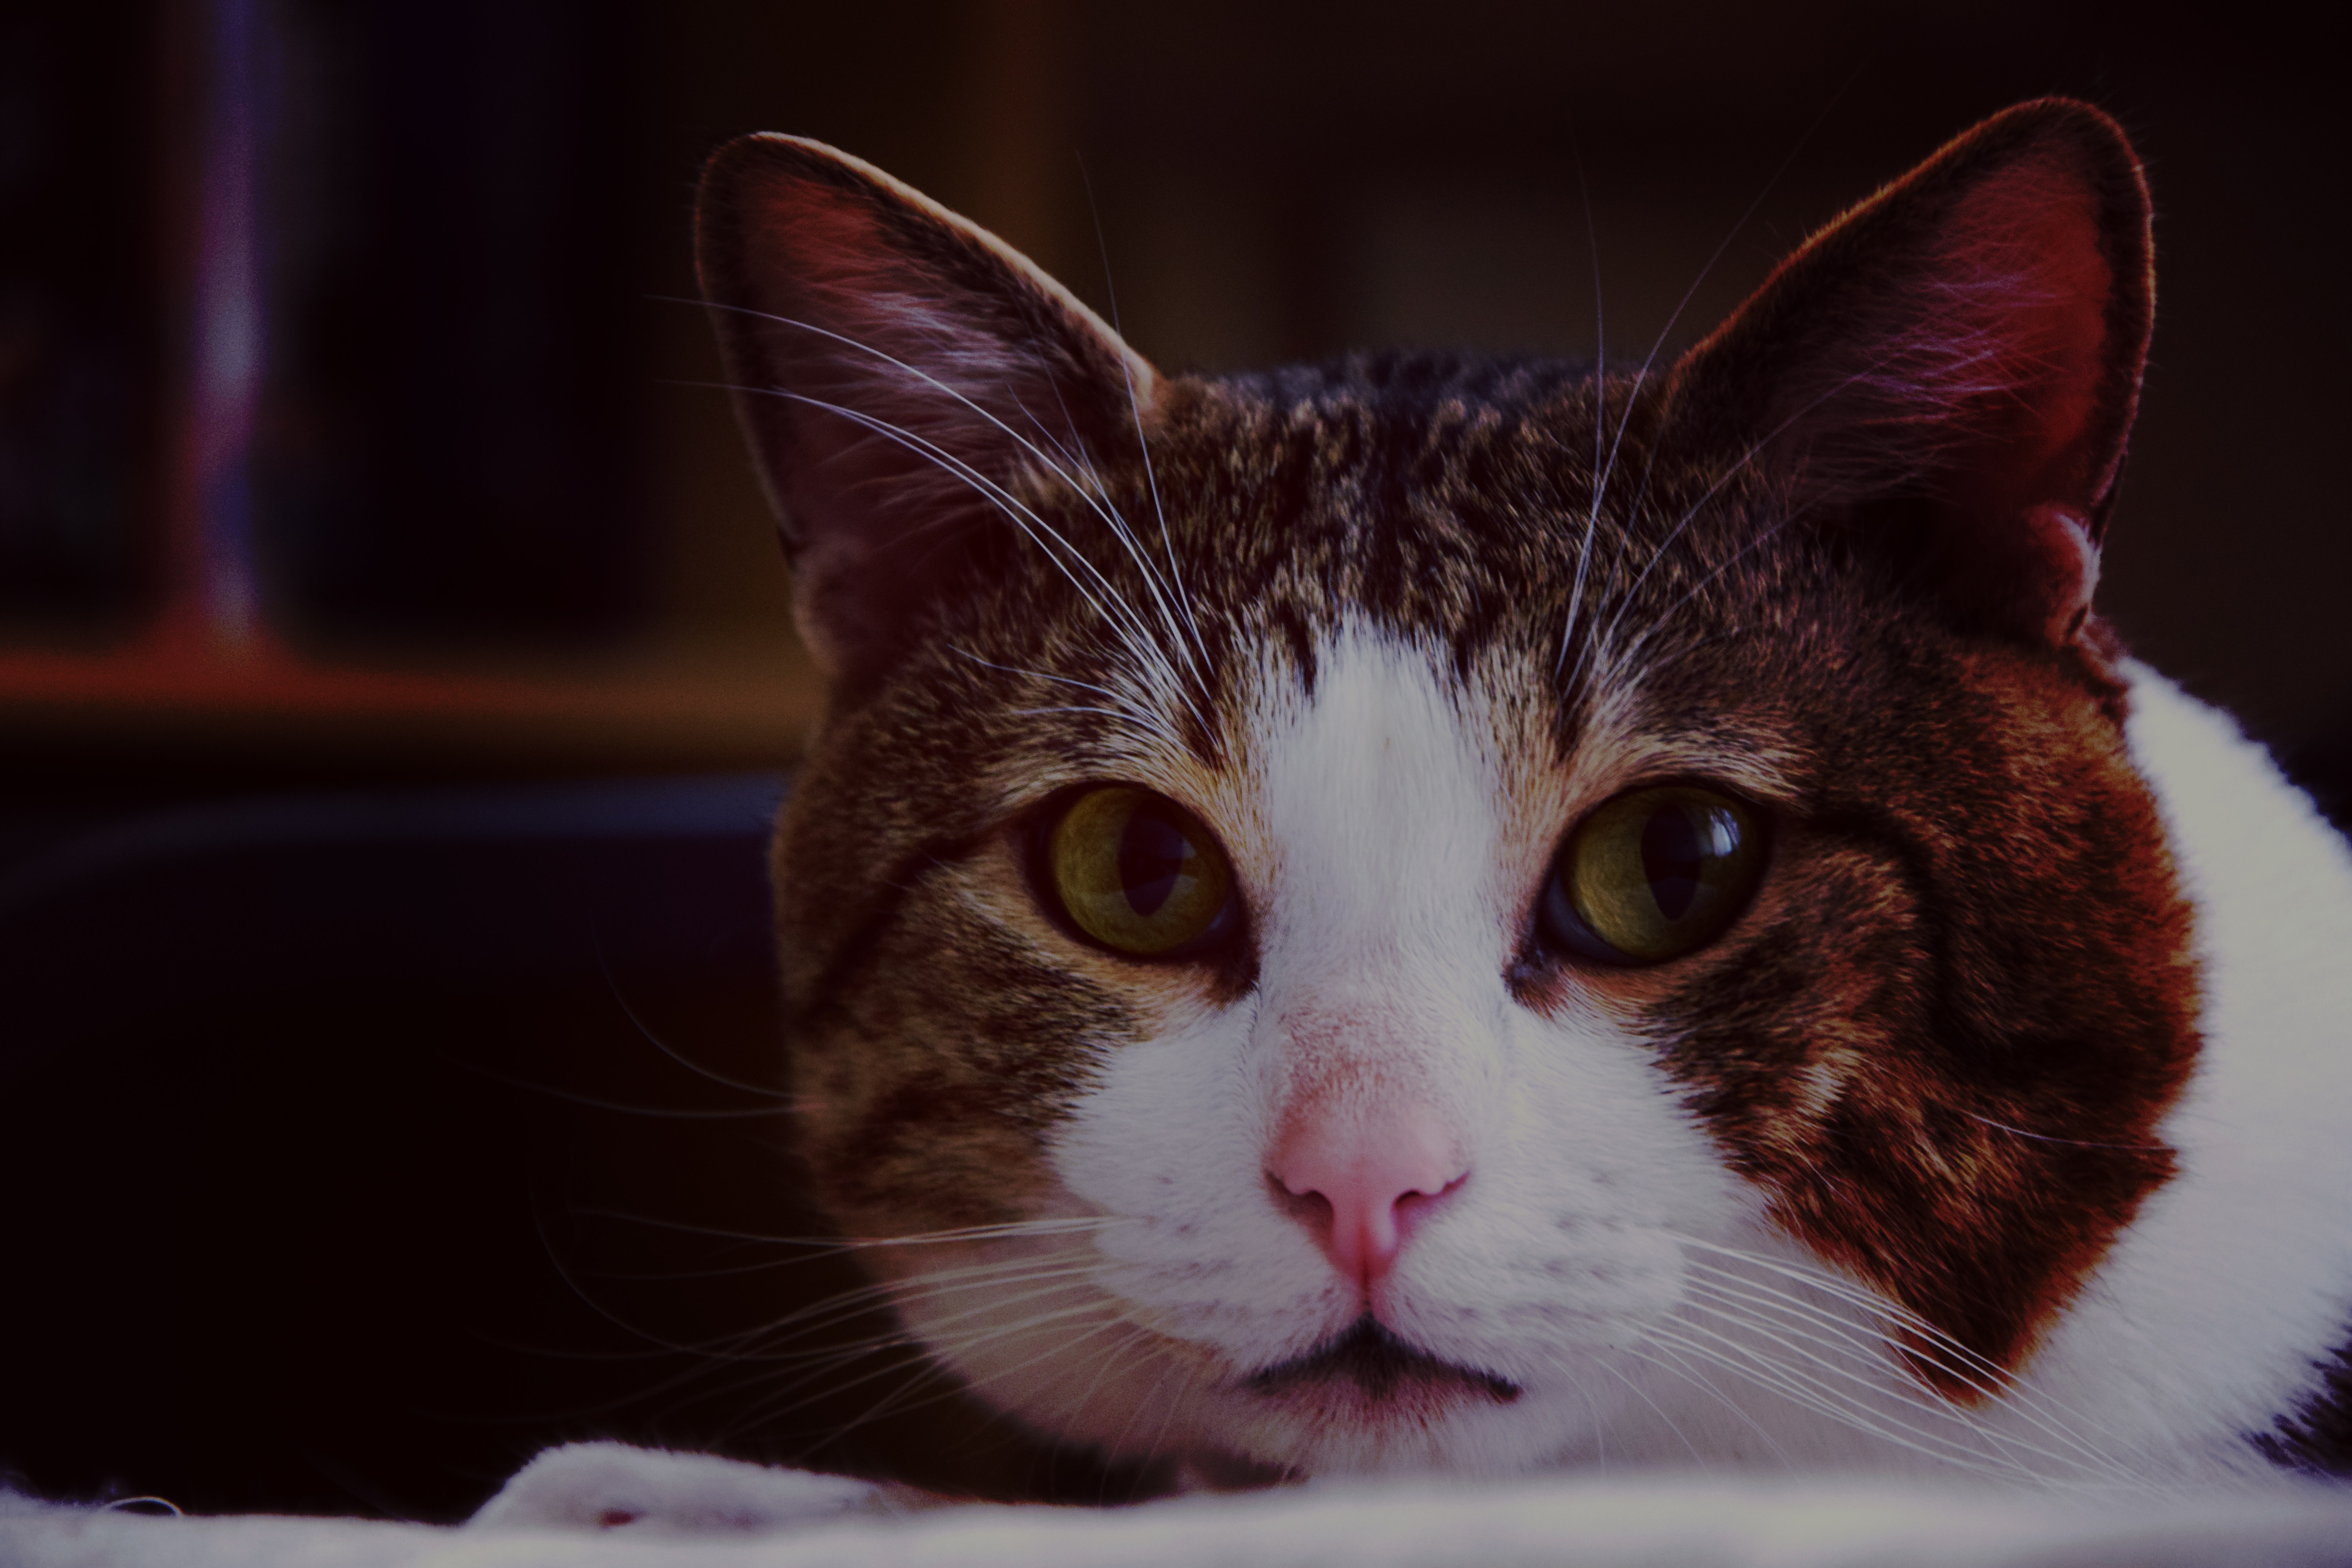 Brown White Gray Cat in Close Up Photography, Lazy, Young, Whisker, Staring, HQ Photo